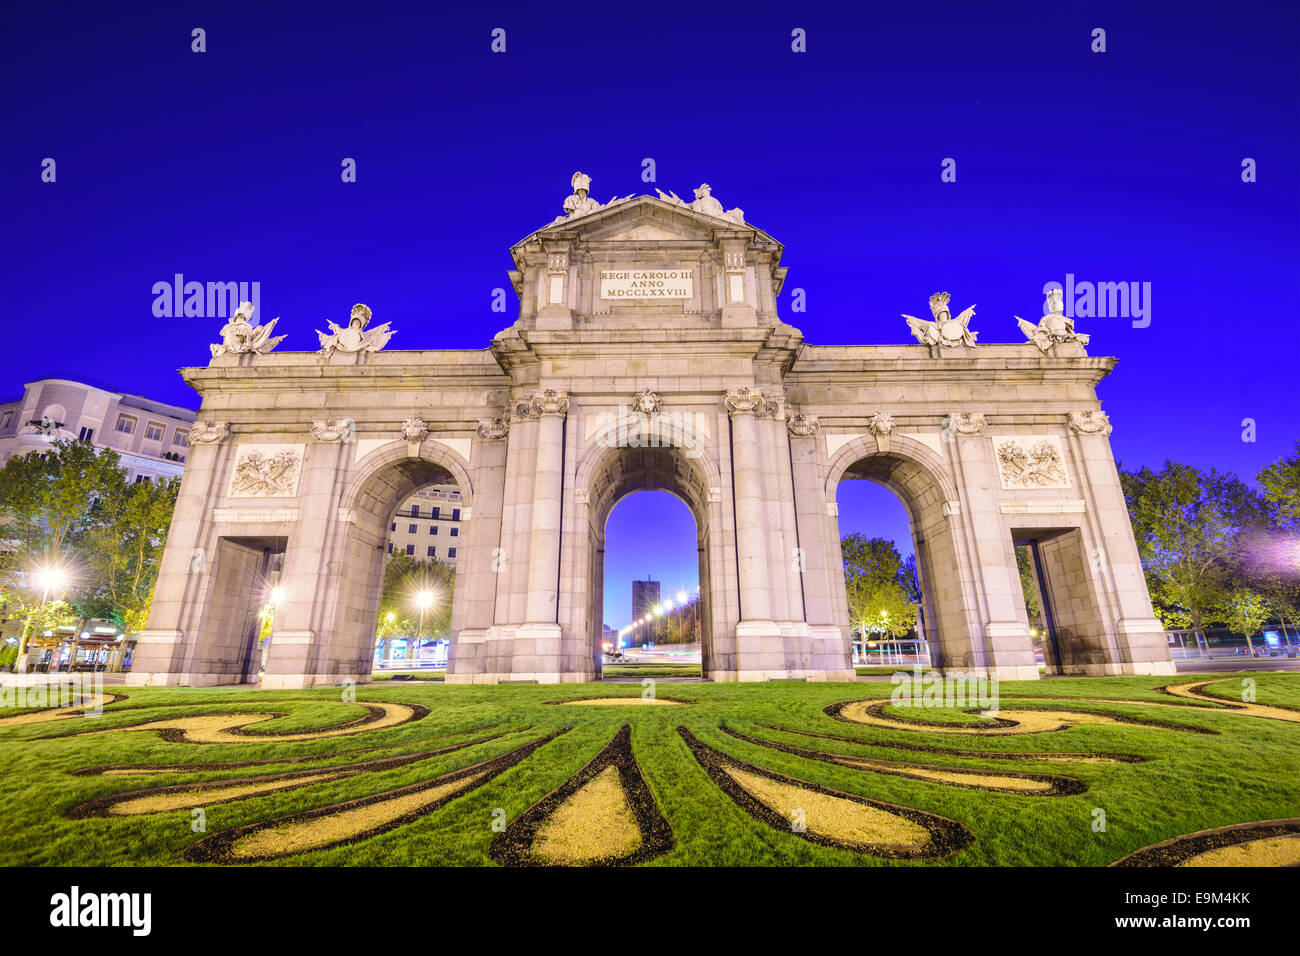 Puerta De Alcala gate in Madrid, Spain. - Stock Image